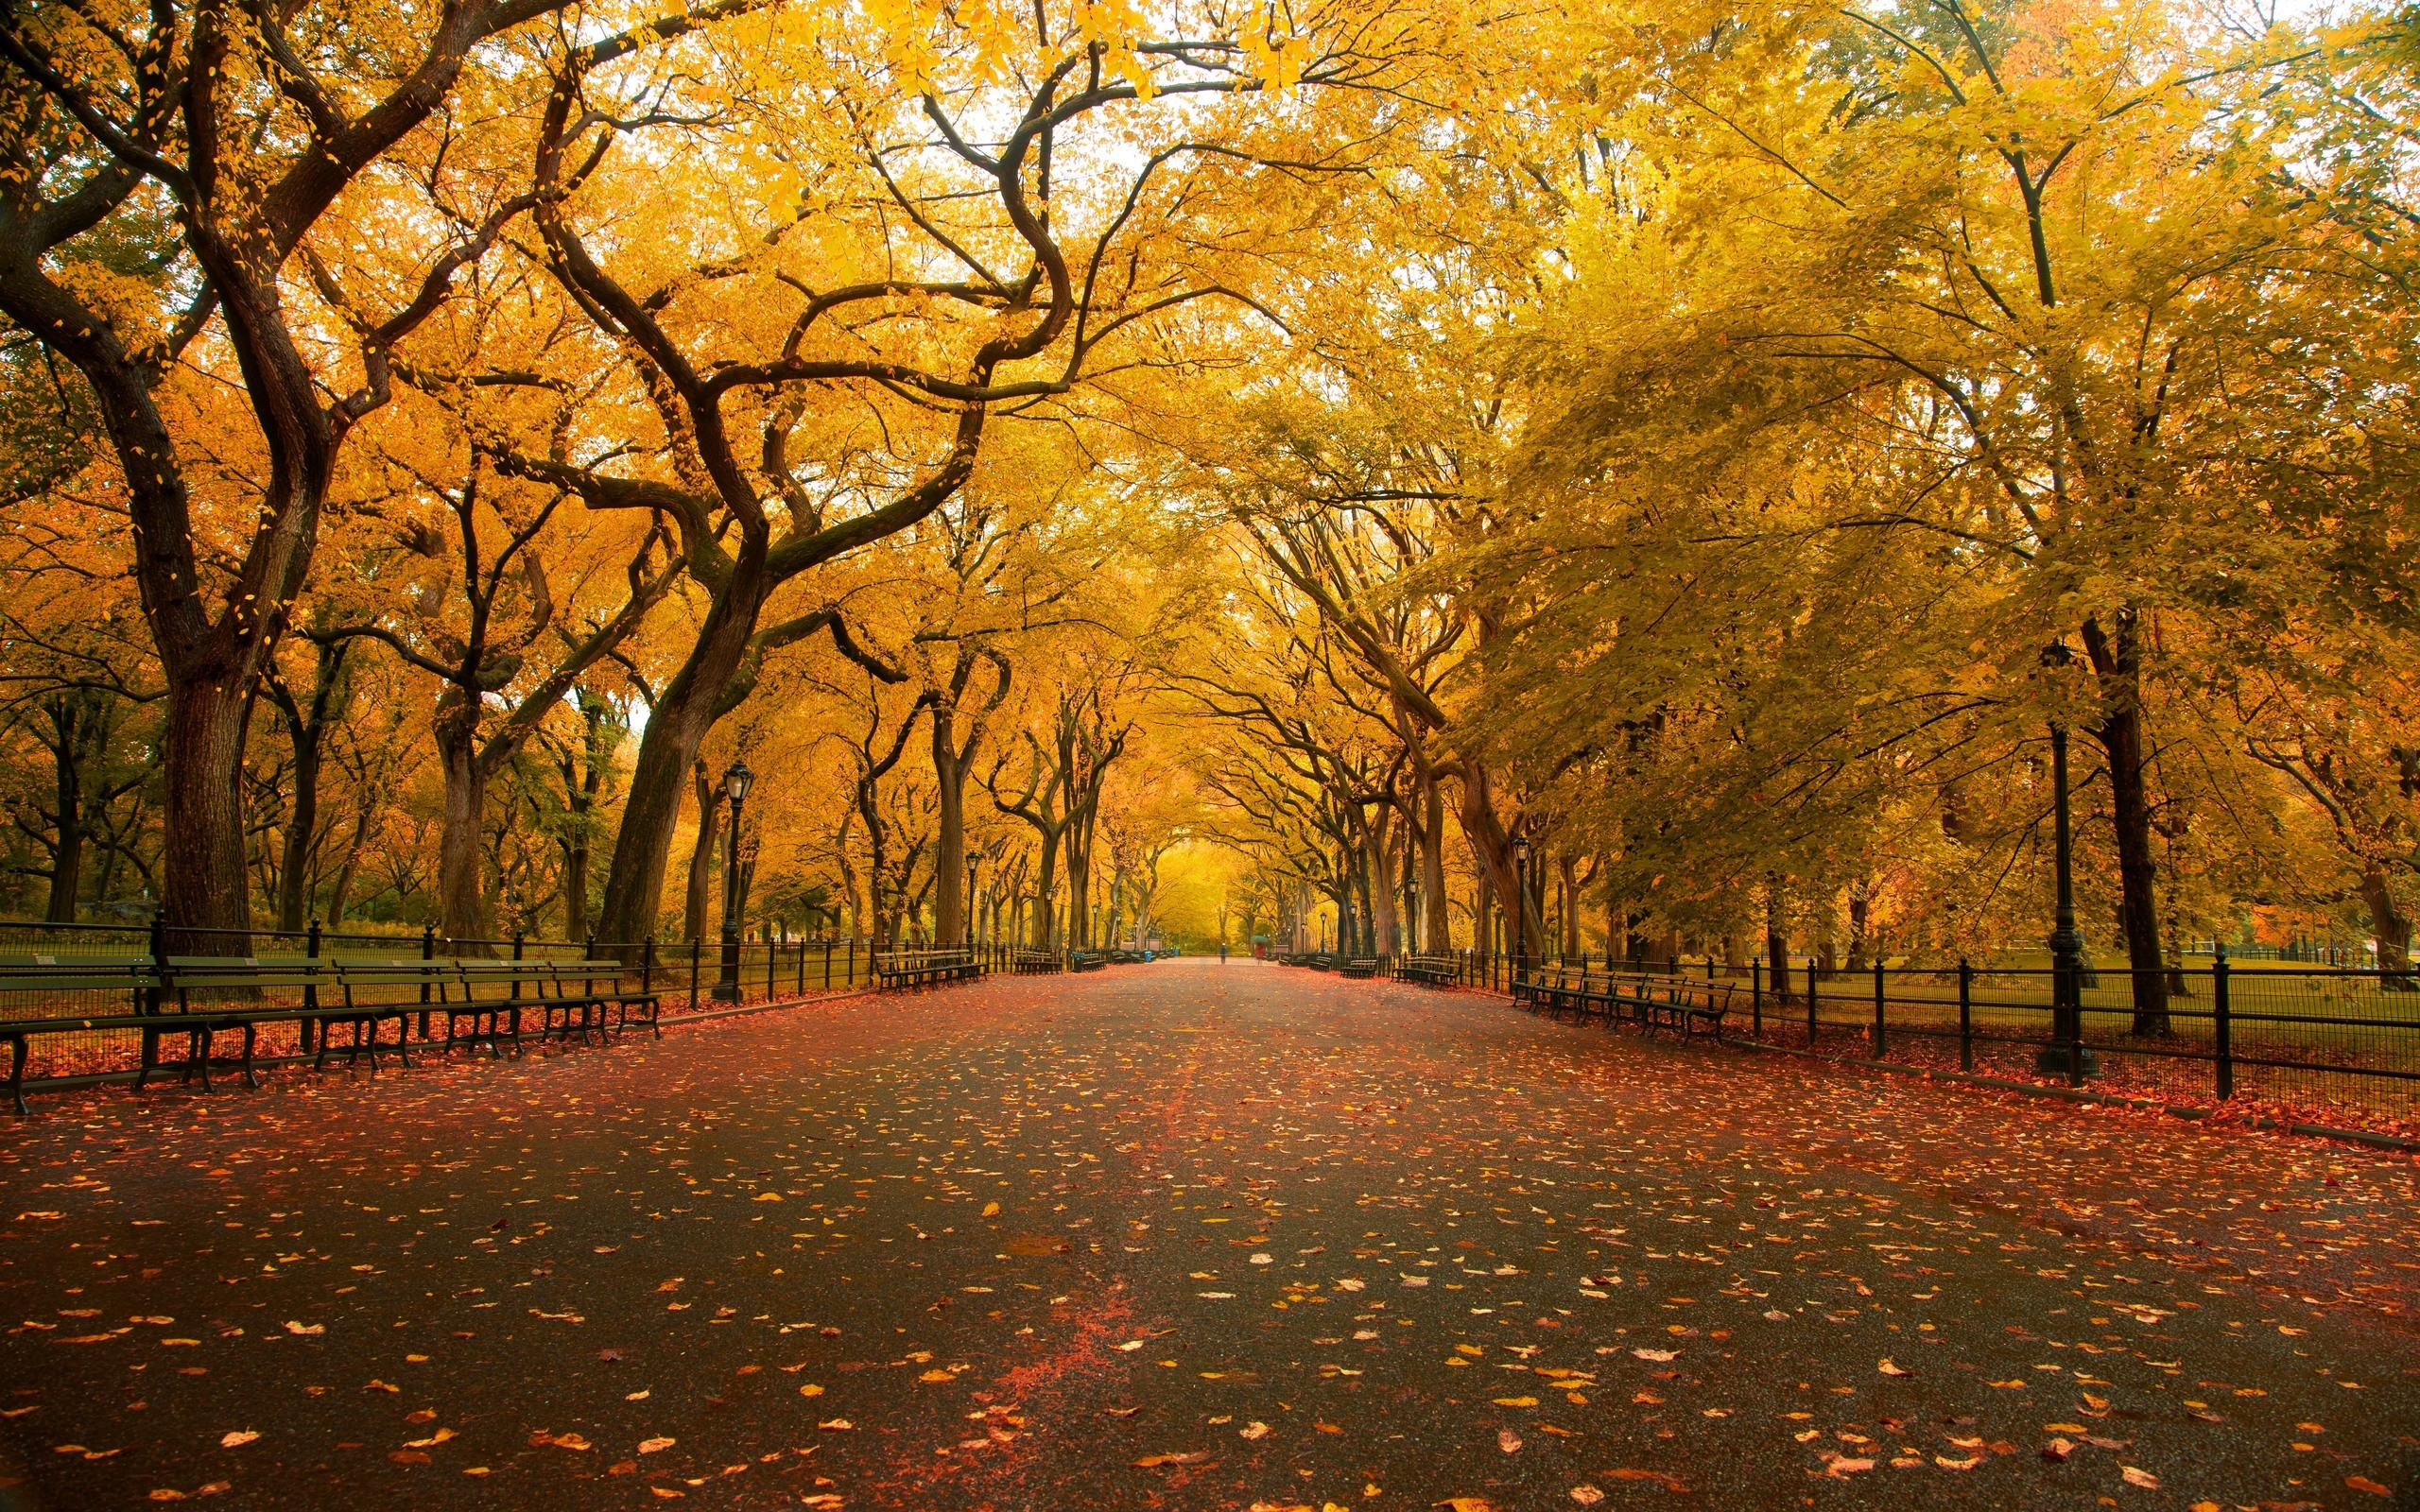 Central Park the mall fall wallpaper 2560x1600 3527 WallpaperUP 2560x1600